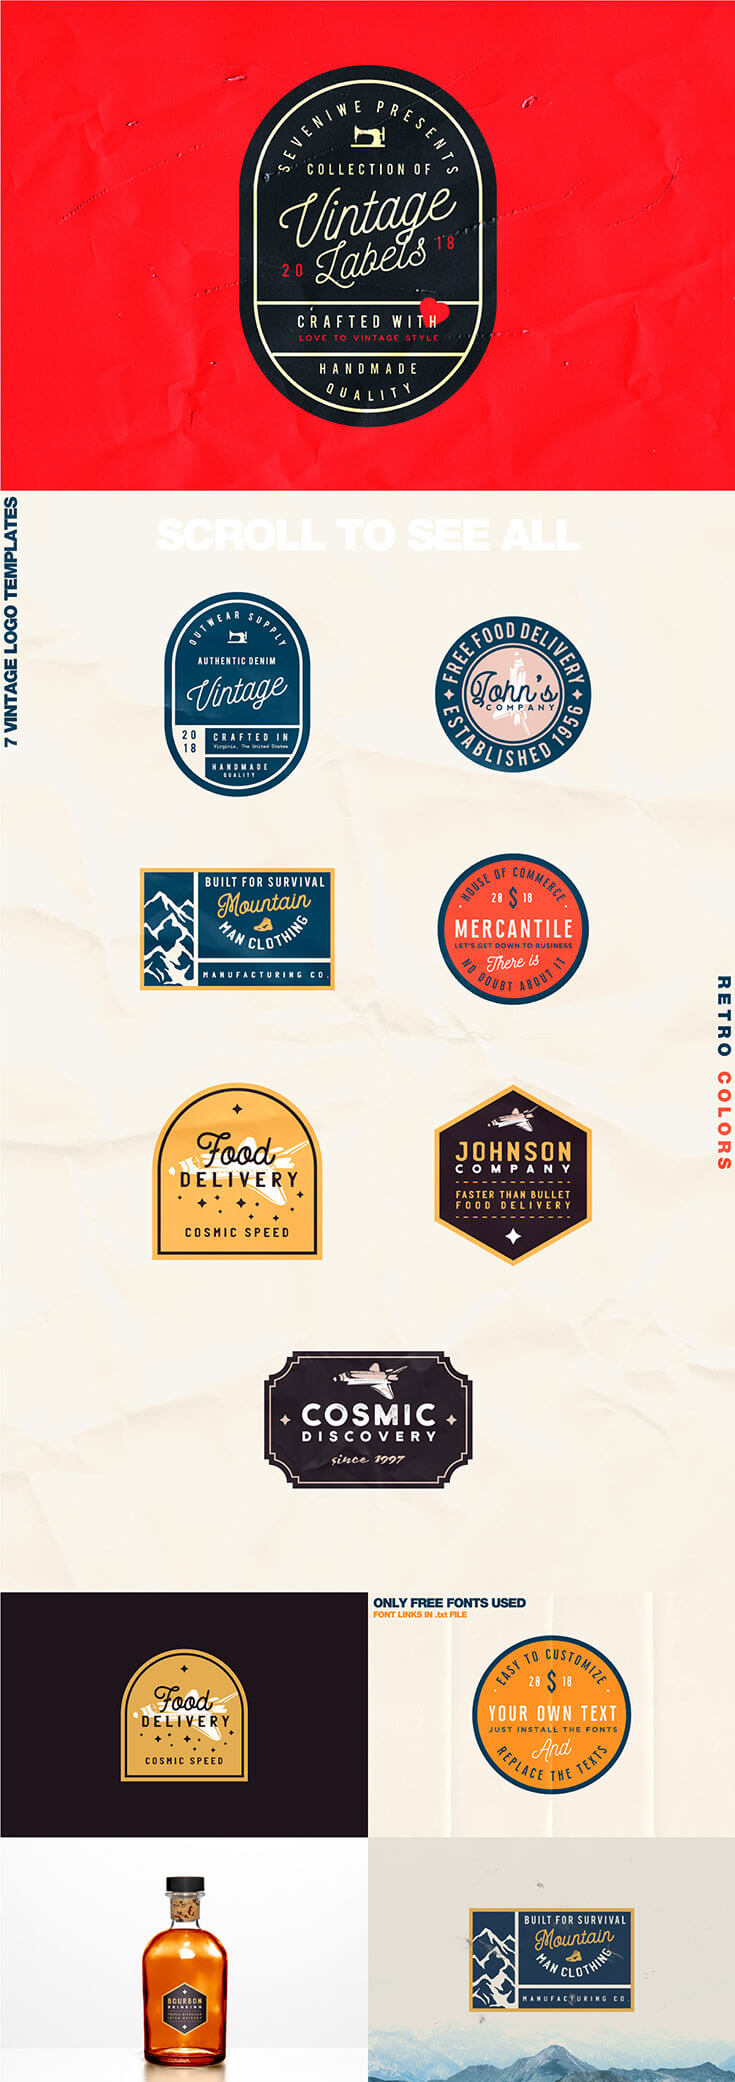 Free #Vintage #Label #Template Kit includes 7 Editable Vintage Logo Templates coming from Roman Paslavskiy. The labels are vector format which means that you may scale logos without losing sharpness. You can use these labels for any branding projects, social media, typography design, apparel design, t-shirt prints, restaurant menus, labels, greeting cards, etc.